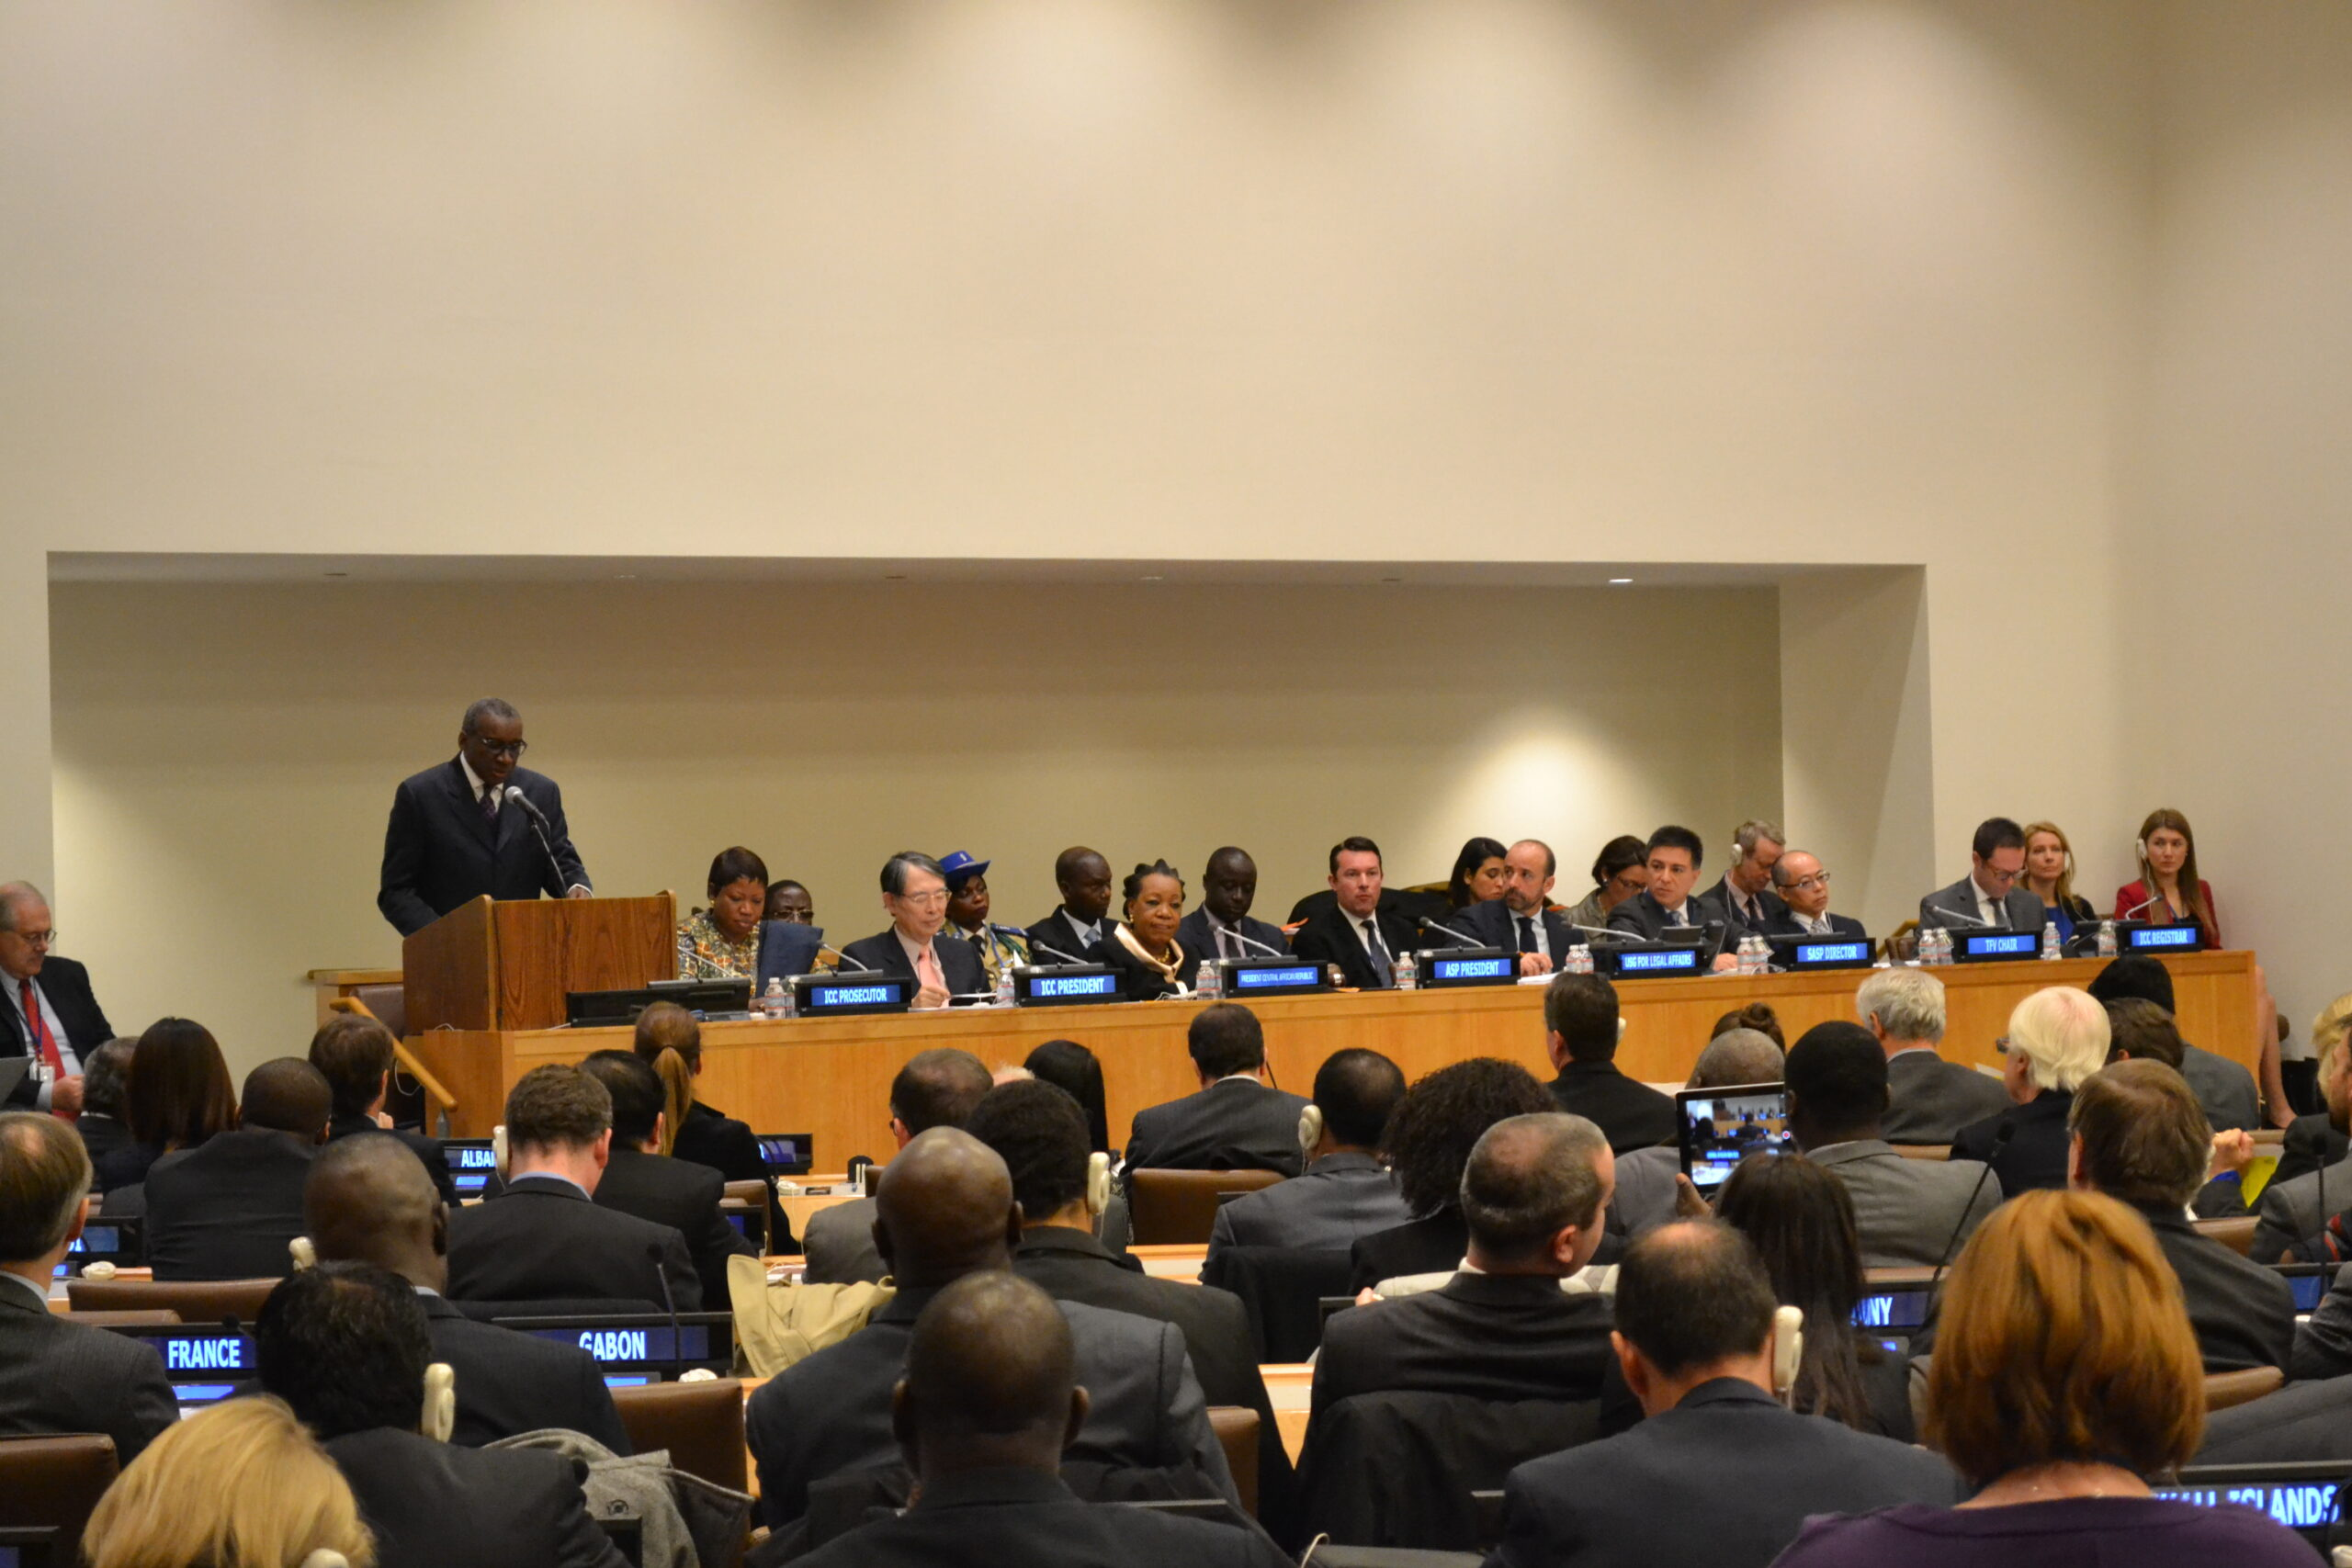 ASP President Sidiki Kaba speaks during the 13th Session of the Assembly of States Parties in New York. ©2014 CICC/Gabriella Chamberland